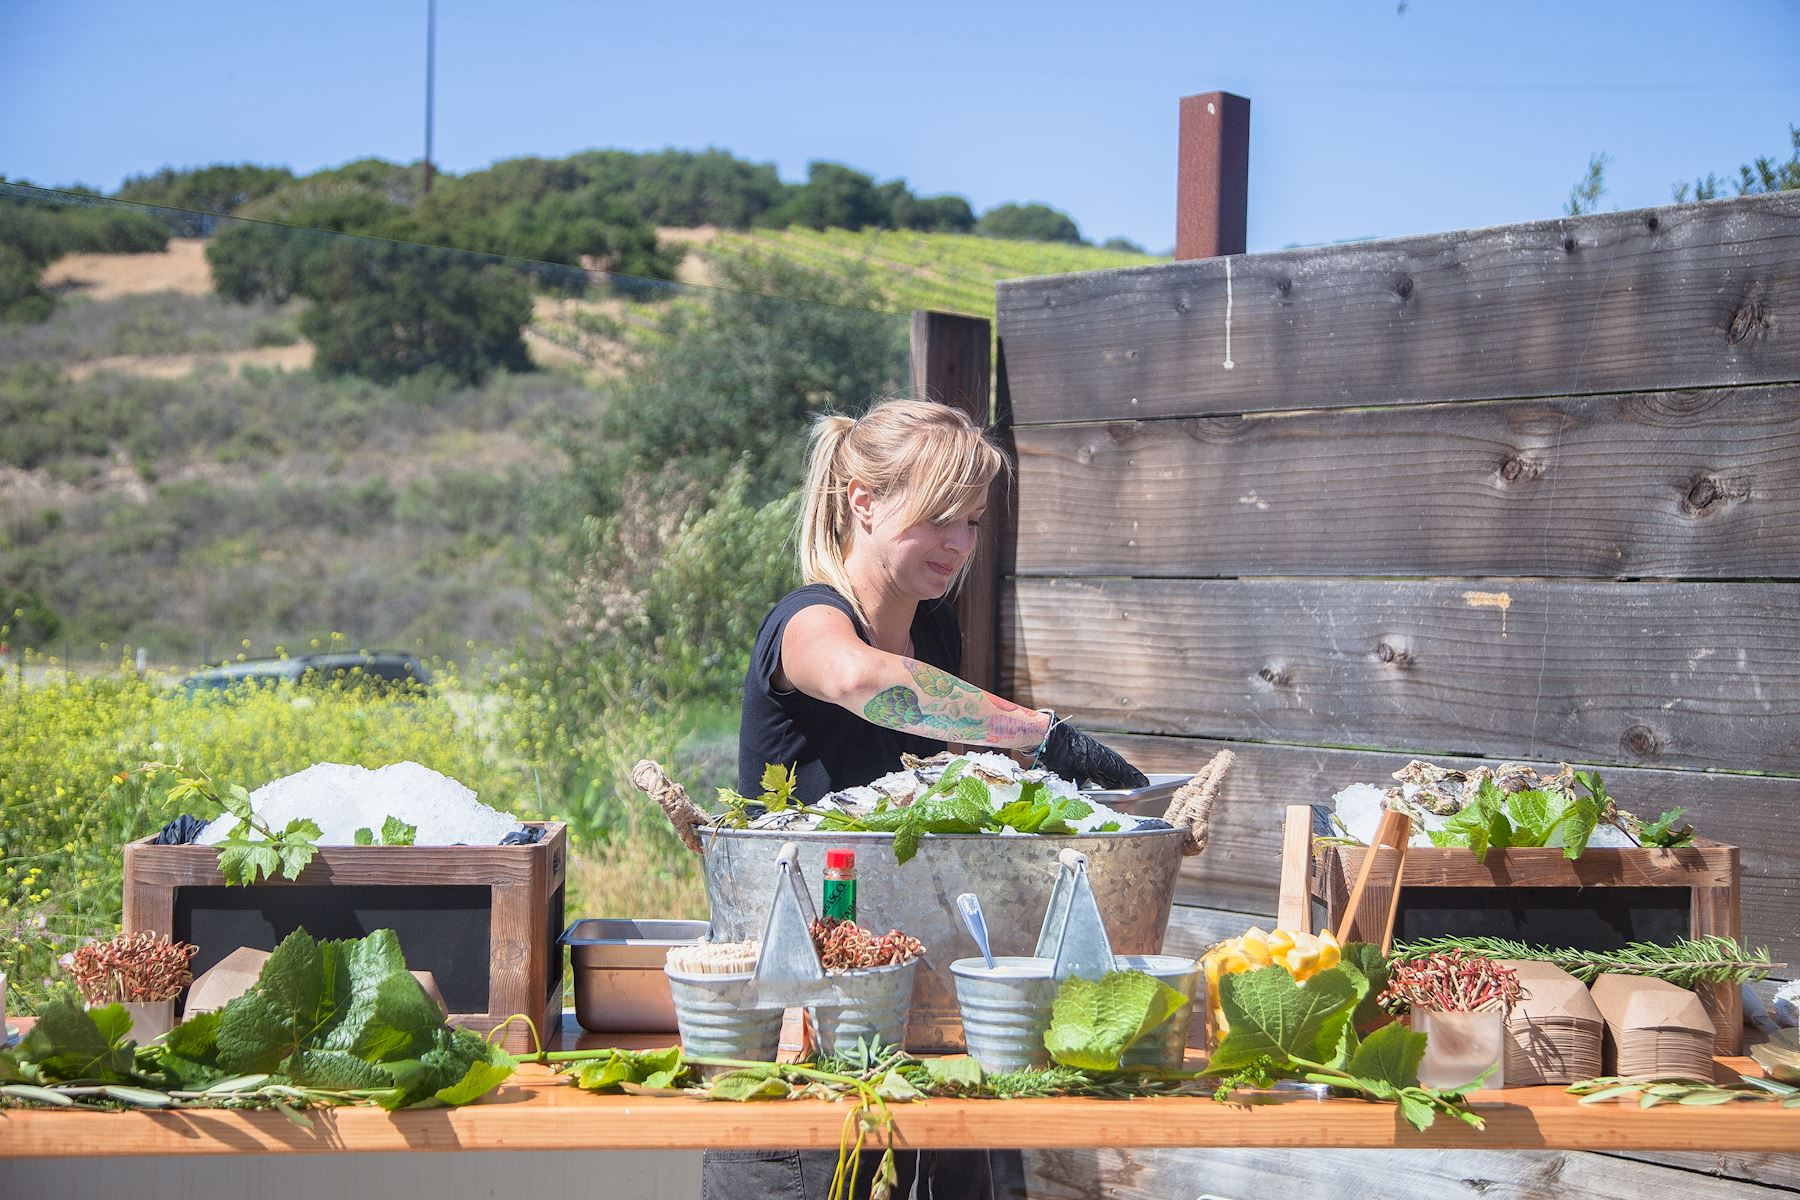 Chef Danelle Jarzynski preparing food for the event